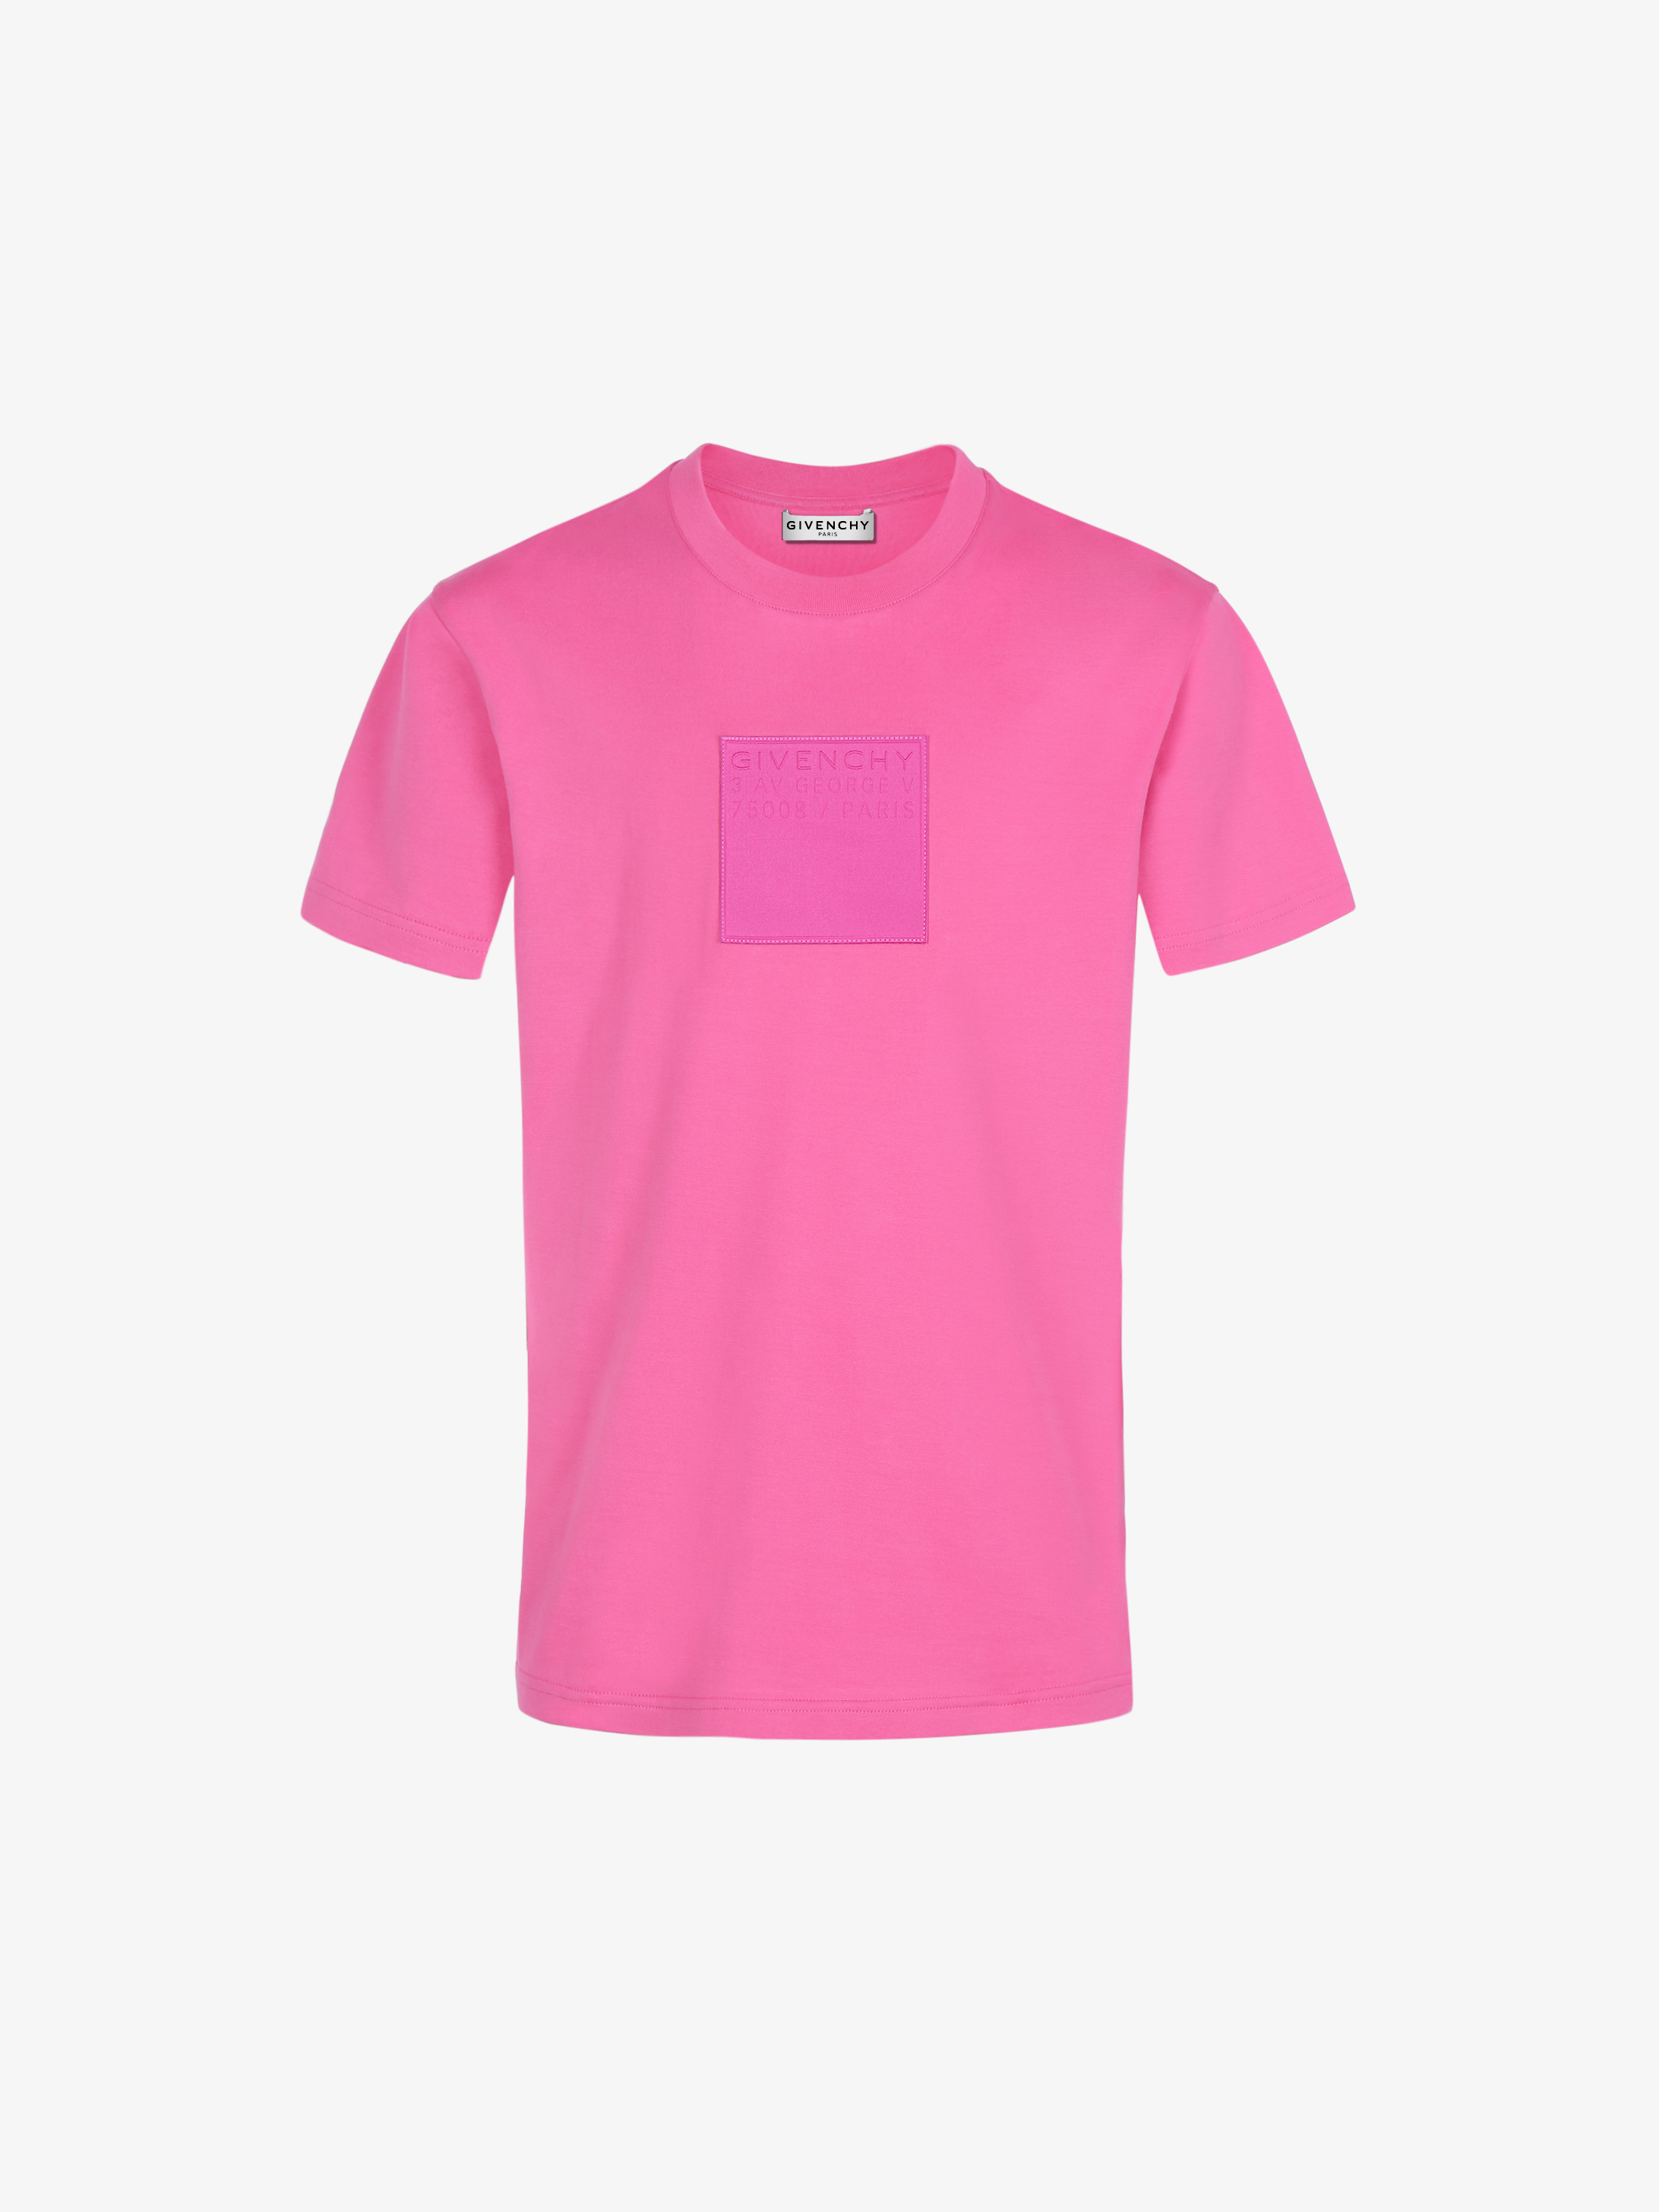 T-shirt slim fit ADRESSE GIVENCHY